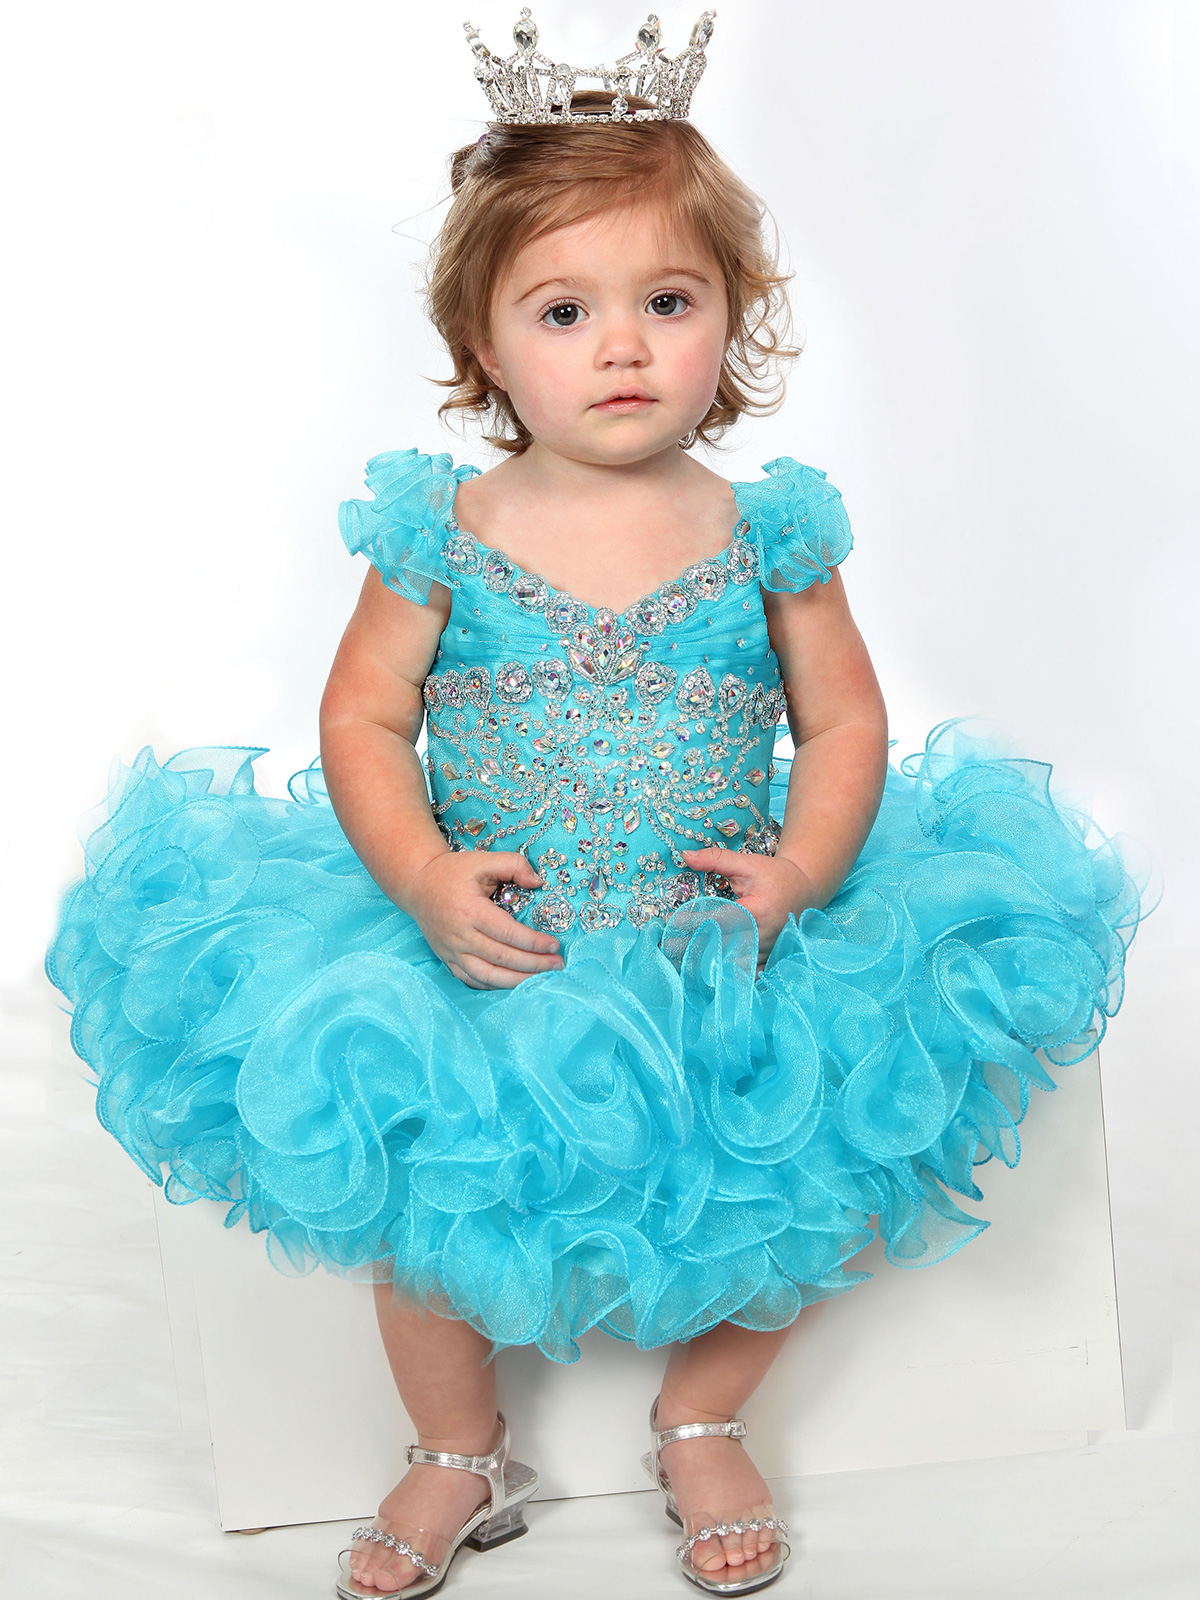 Shop Formal Dresses for Infants, Babies, & Toddlers. Find the perfect matching FLOWER GIRL DRESS for your baby to match her siblings. Baby Formal Dresses Start at $ Sizes from newborn to 24 Month toddlers formal dresses.